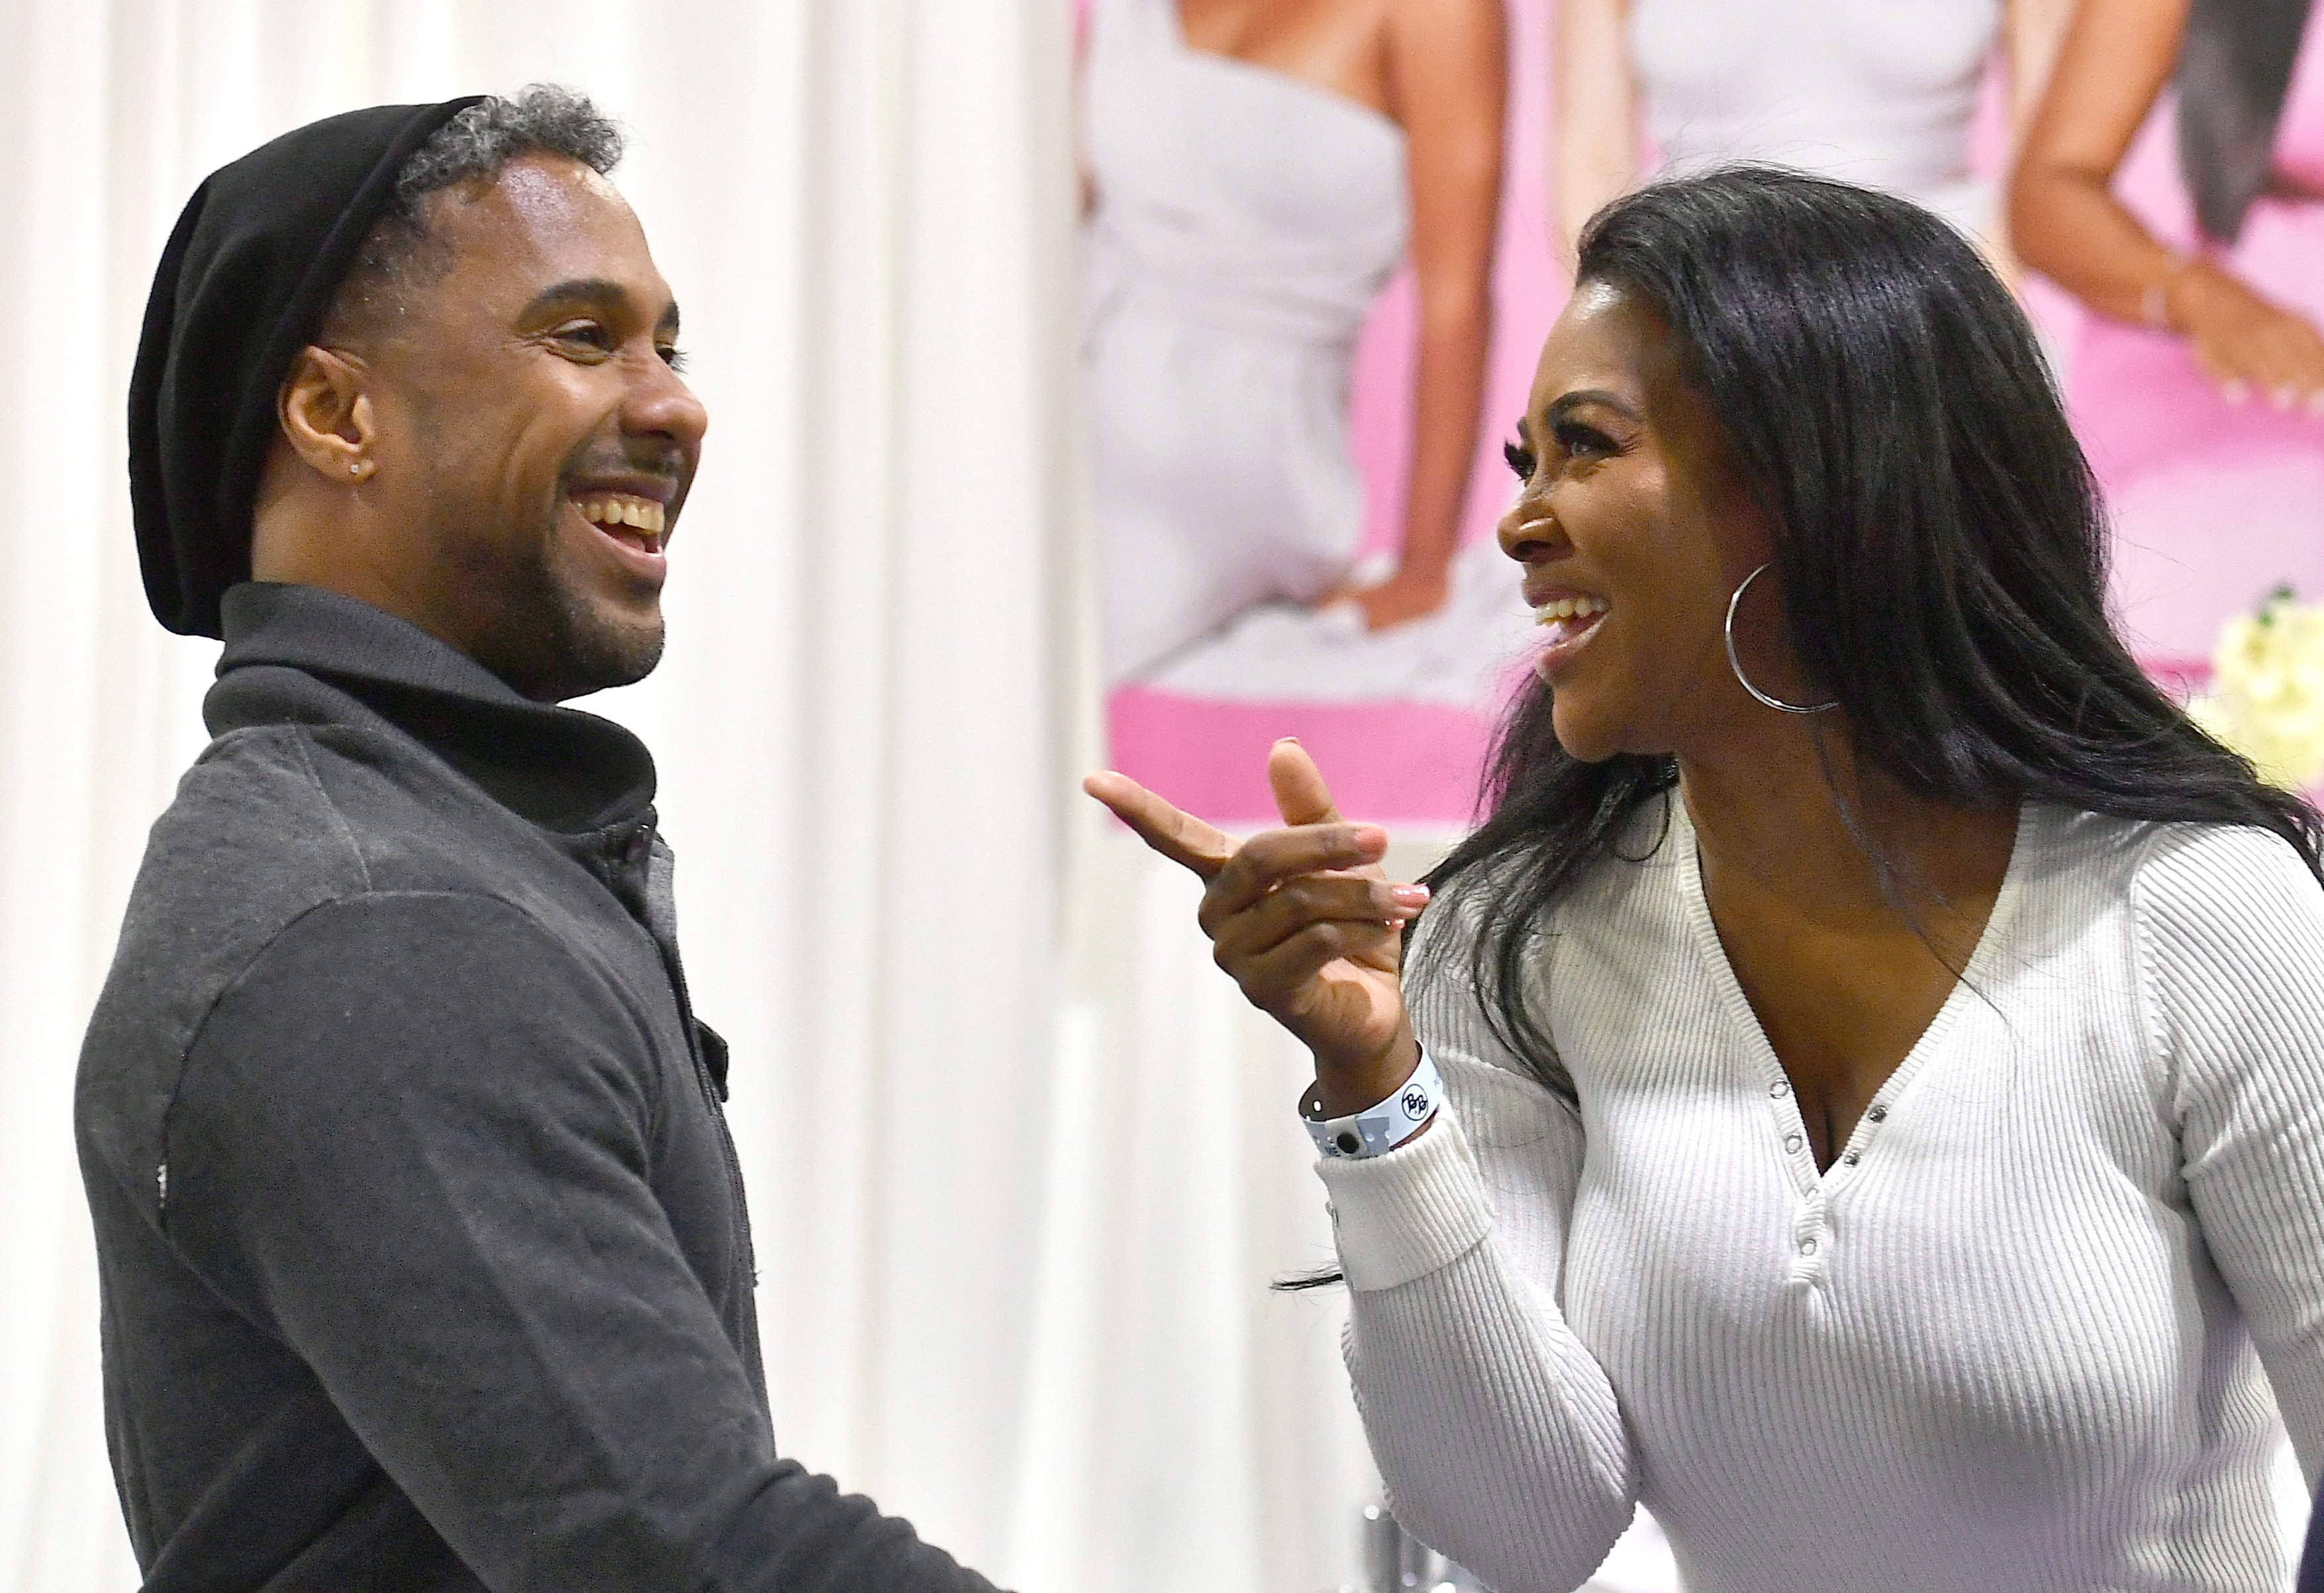 Marc Daly and Kenya Moore attend the 2020 Bronner Brothers International Beauty Show at Georgia World Congress Center in Atlanta, Georgia on February 08, 2020   Photo: Getty Images